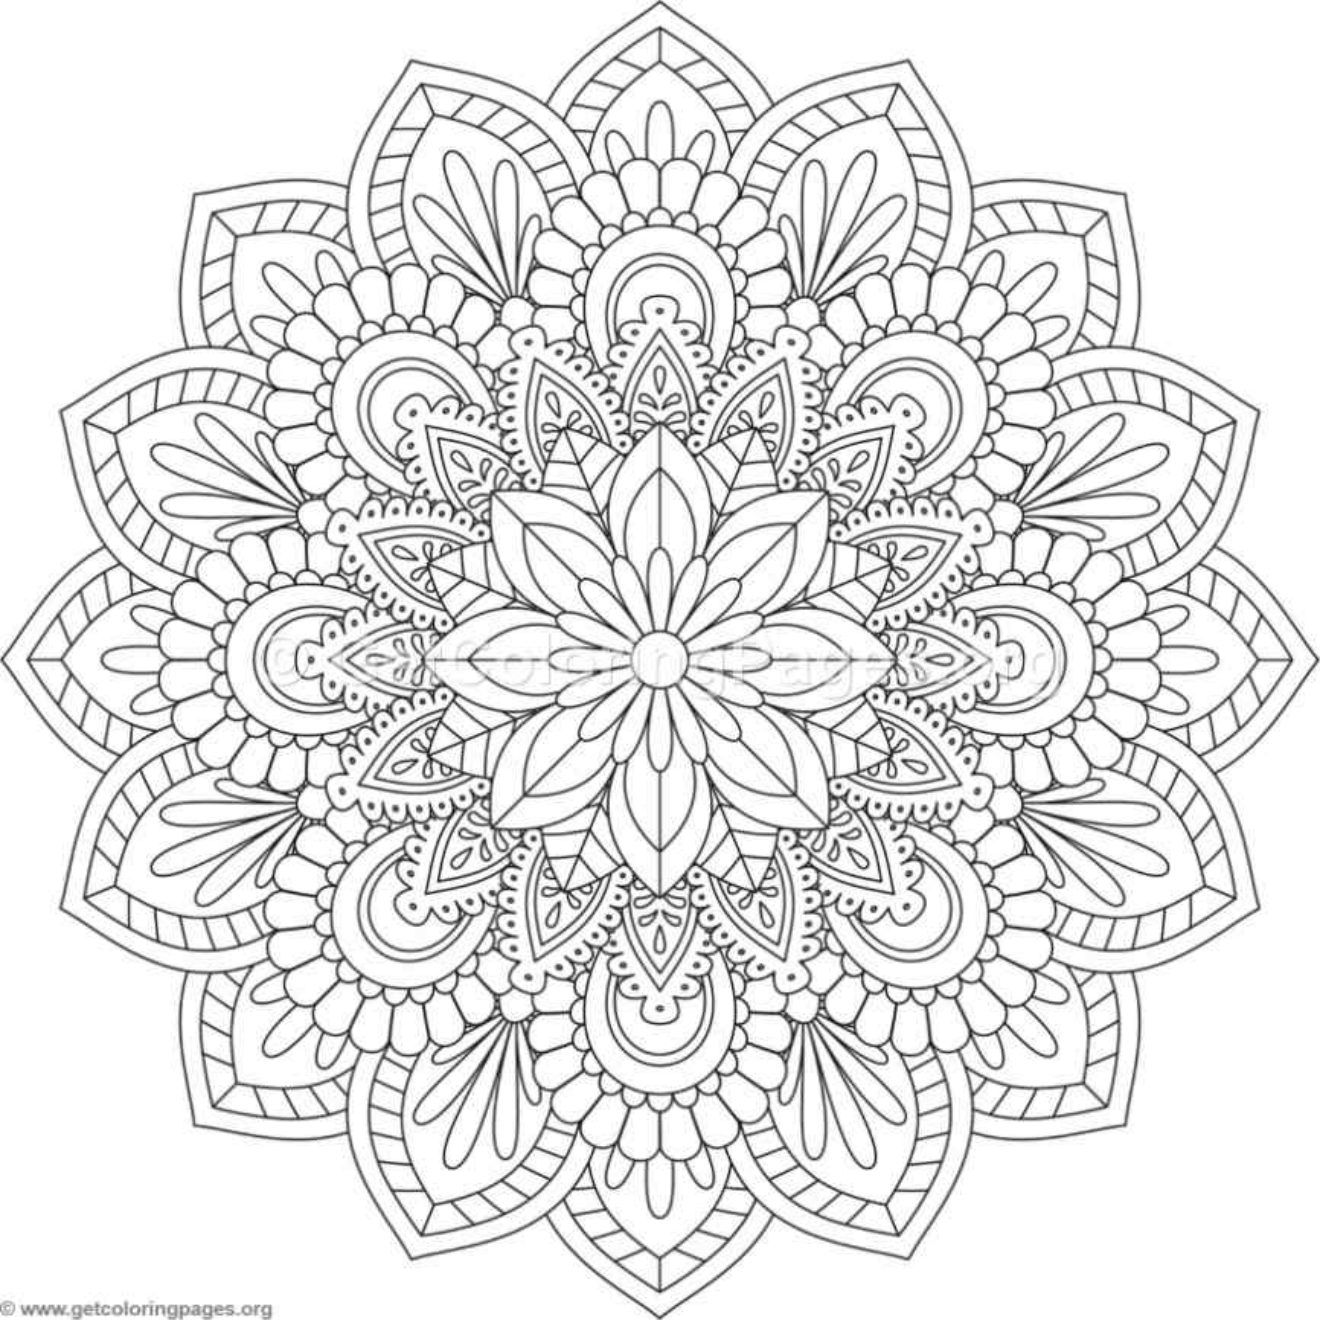 Flower Mandala Coloring Pages 402 Getcoloringpages Org Mandala Coloring Pages Mandala Art Mandala Drawing